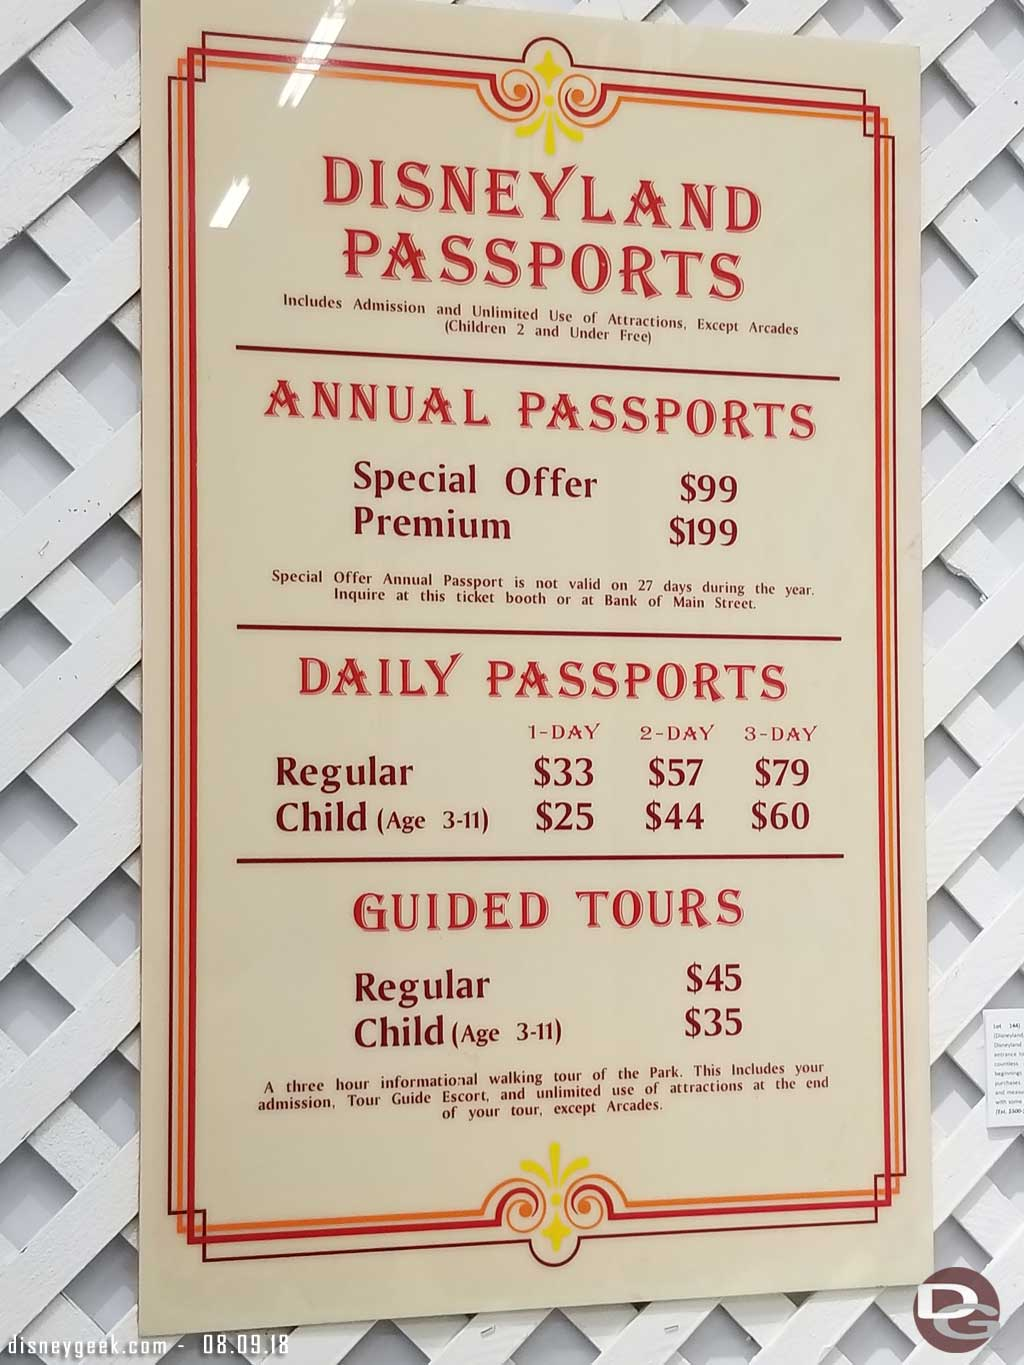 Disneyland Ticket prices from 2000 - Sold for $4,500